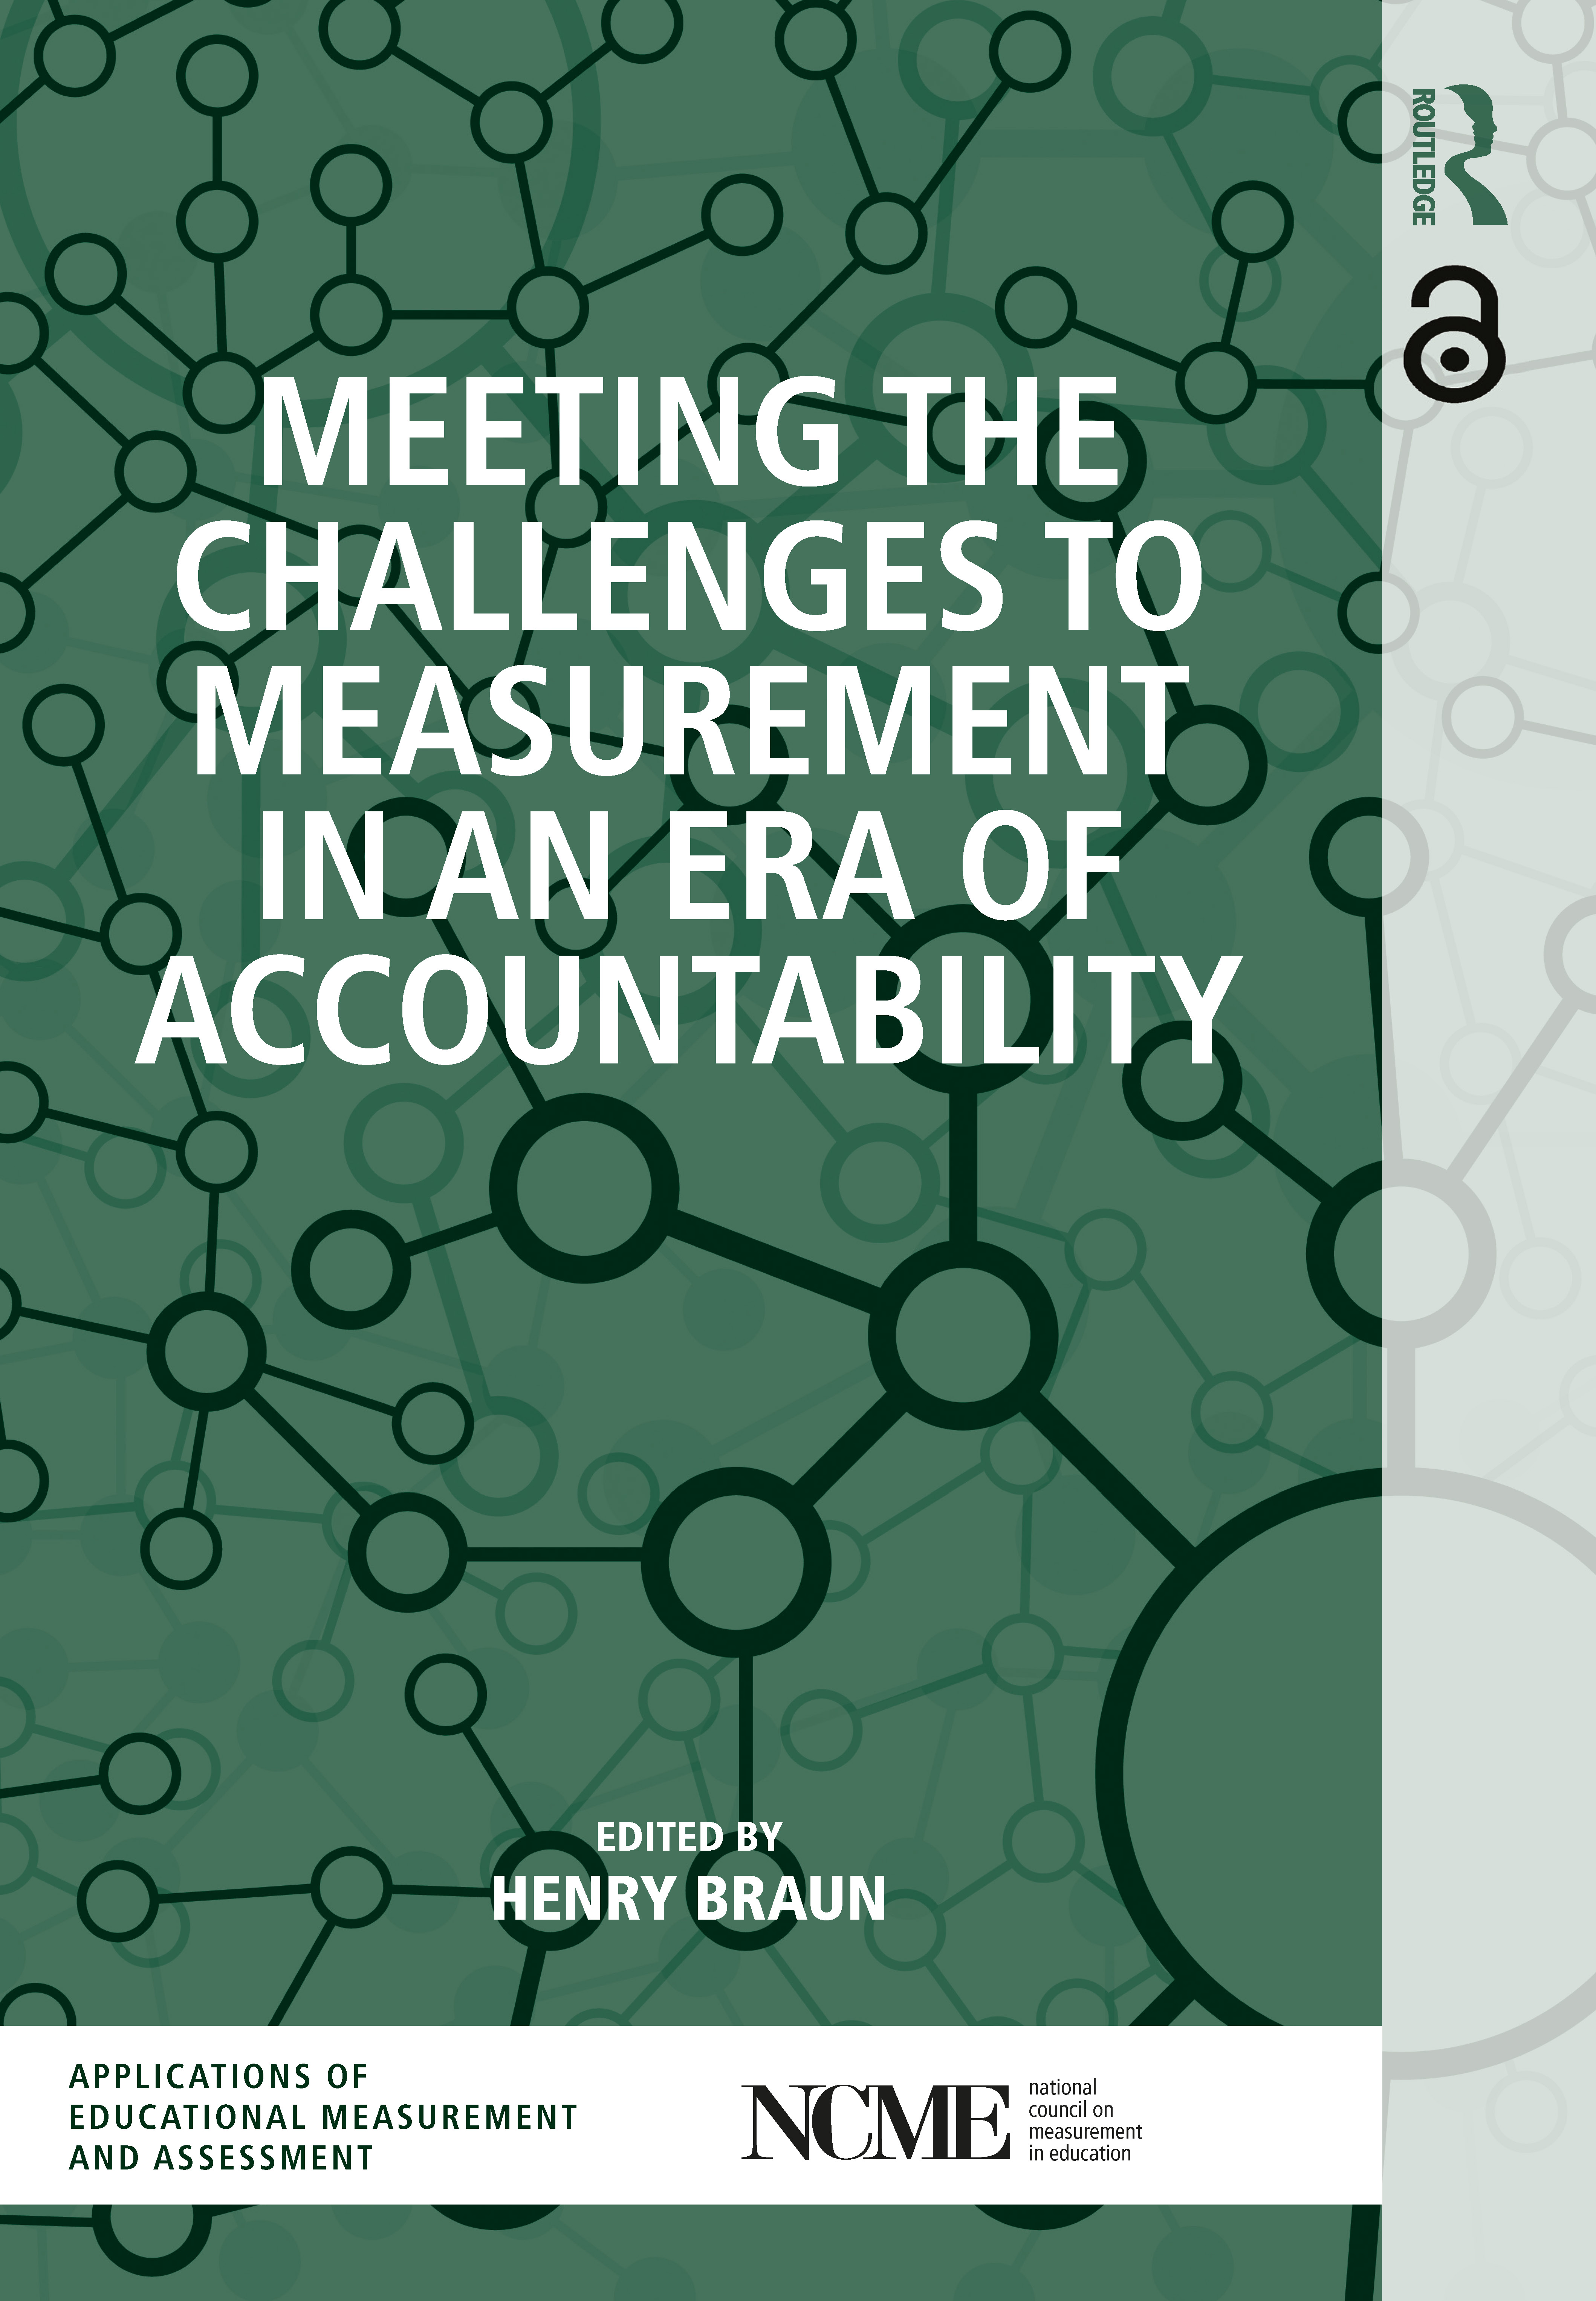 Meeting the Challenges to Measurement in an Era of Accountability